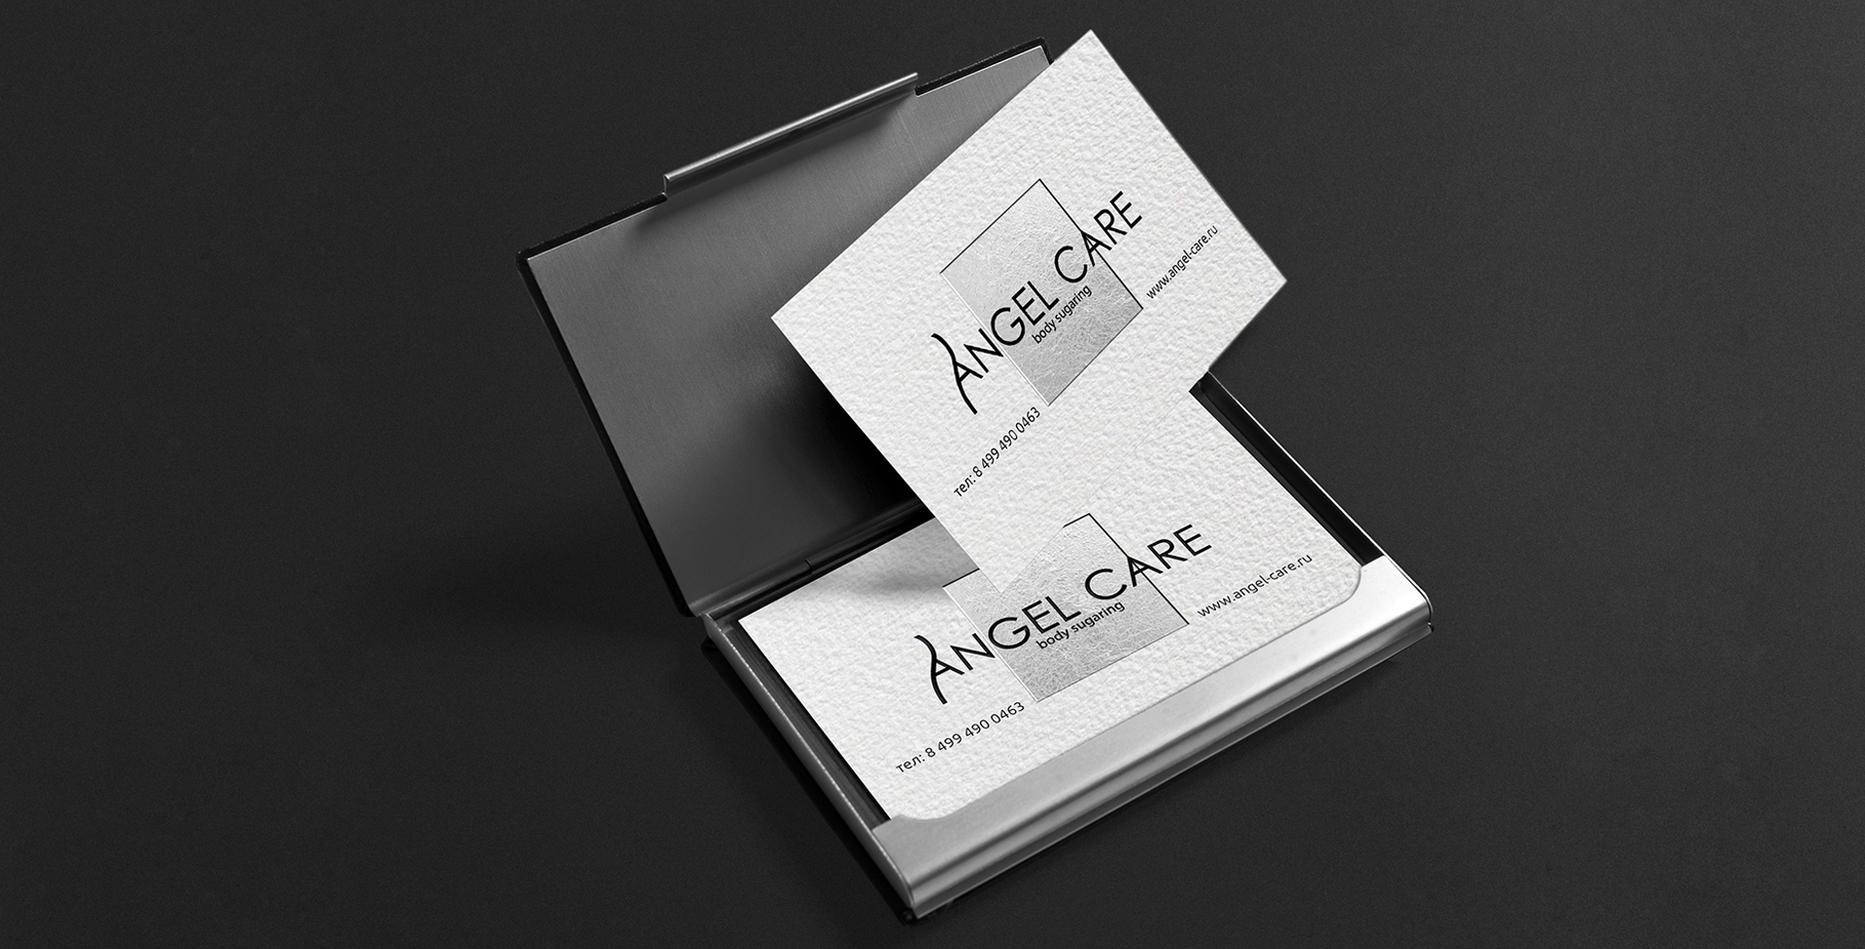 Case: logo, corporate identity, promotional products for Angel Care — Rubarb - Image - 11